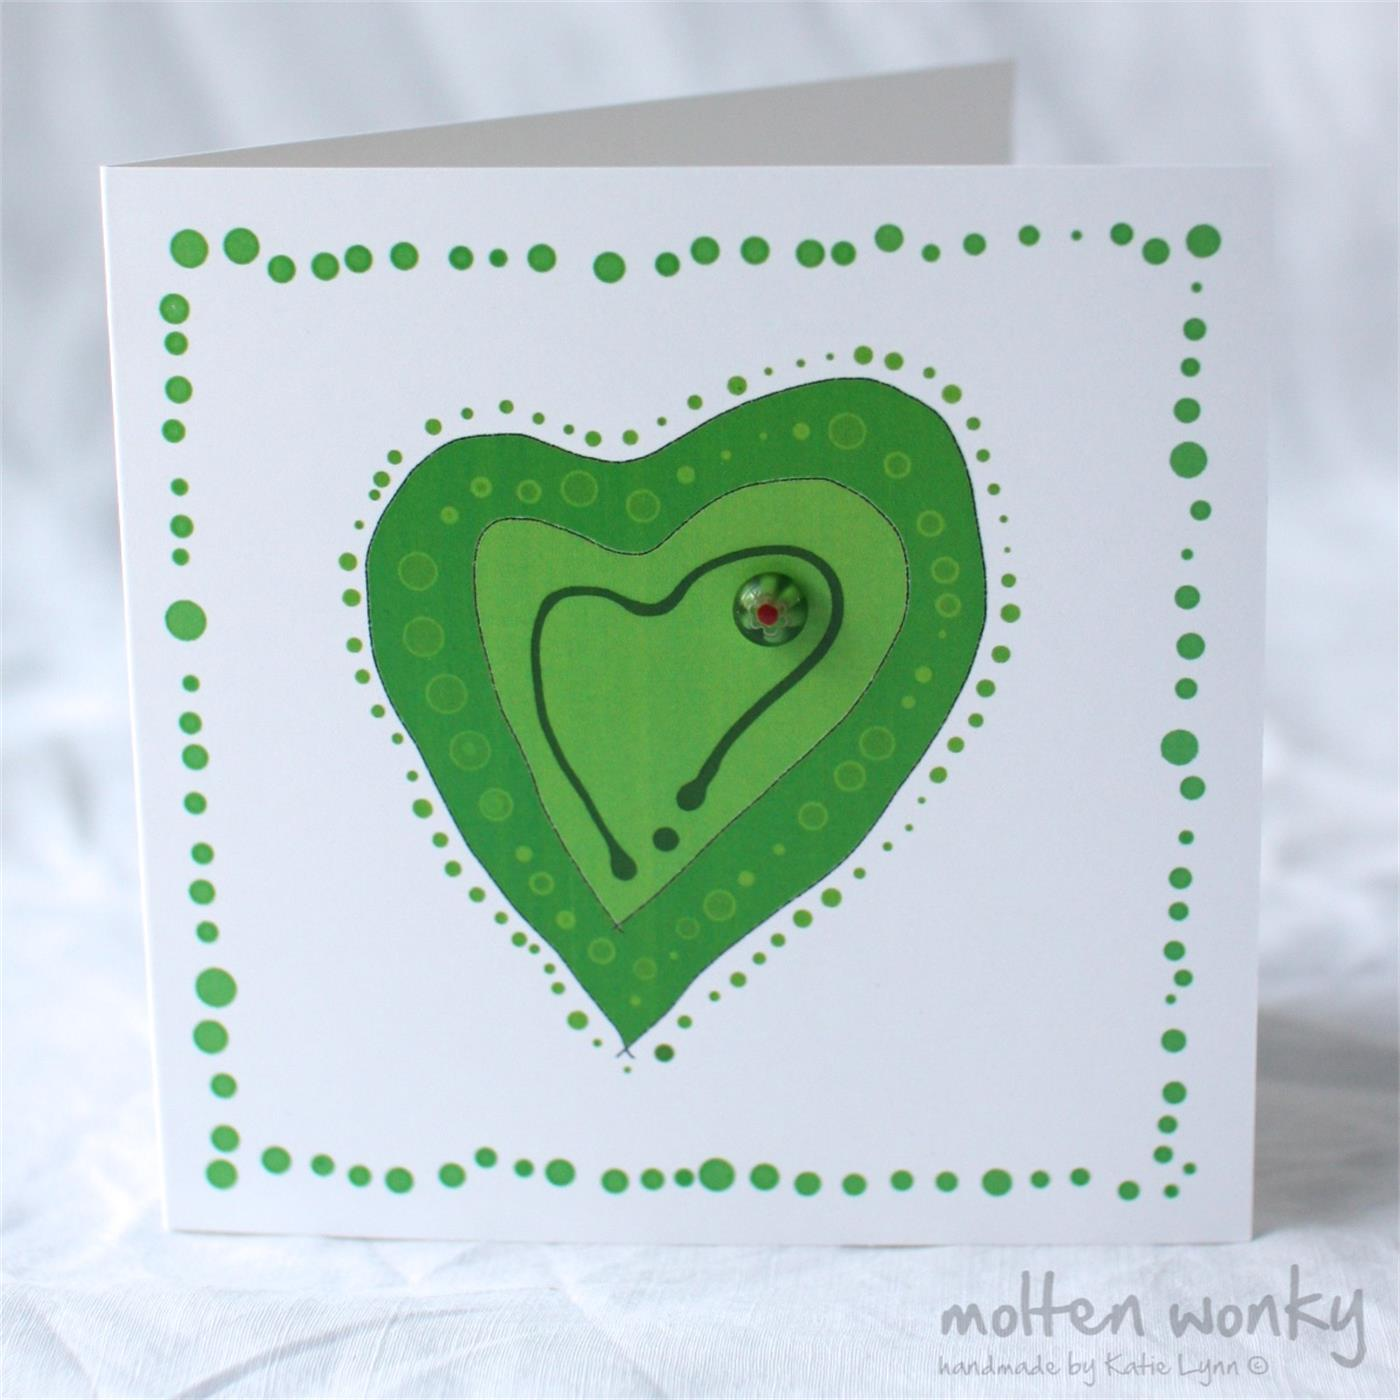 Bloblet Heart Green Fused Glass Handmade Gift Cards By Molten Wonky